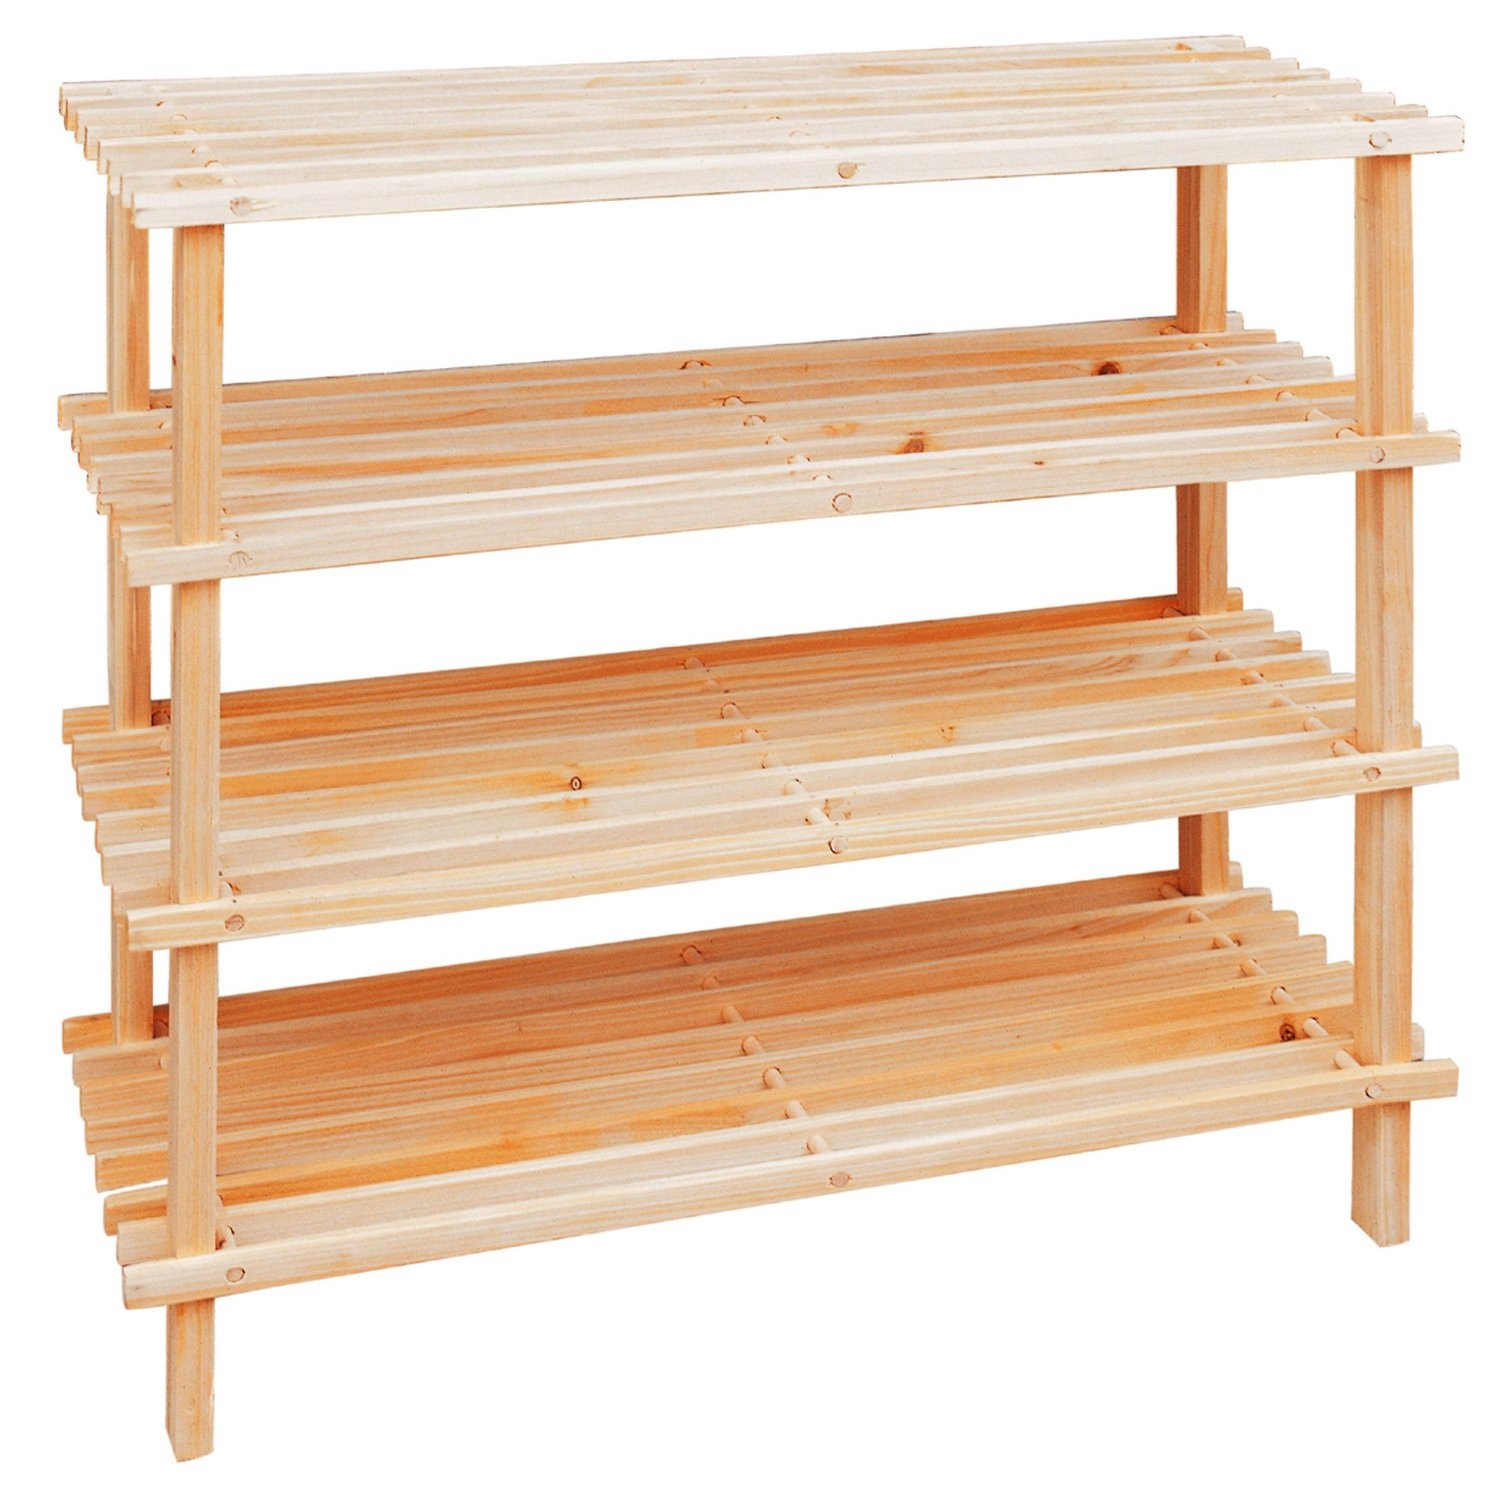 Mainstays Shoe Rack | Threshold Shoe Rack | Shoe Rack Target